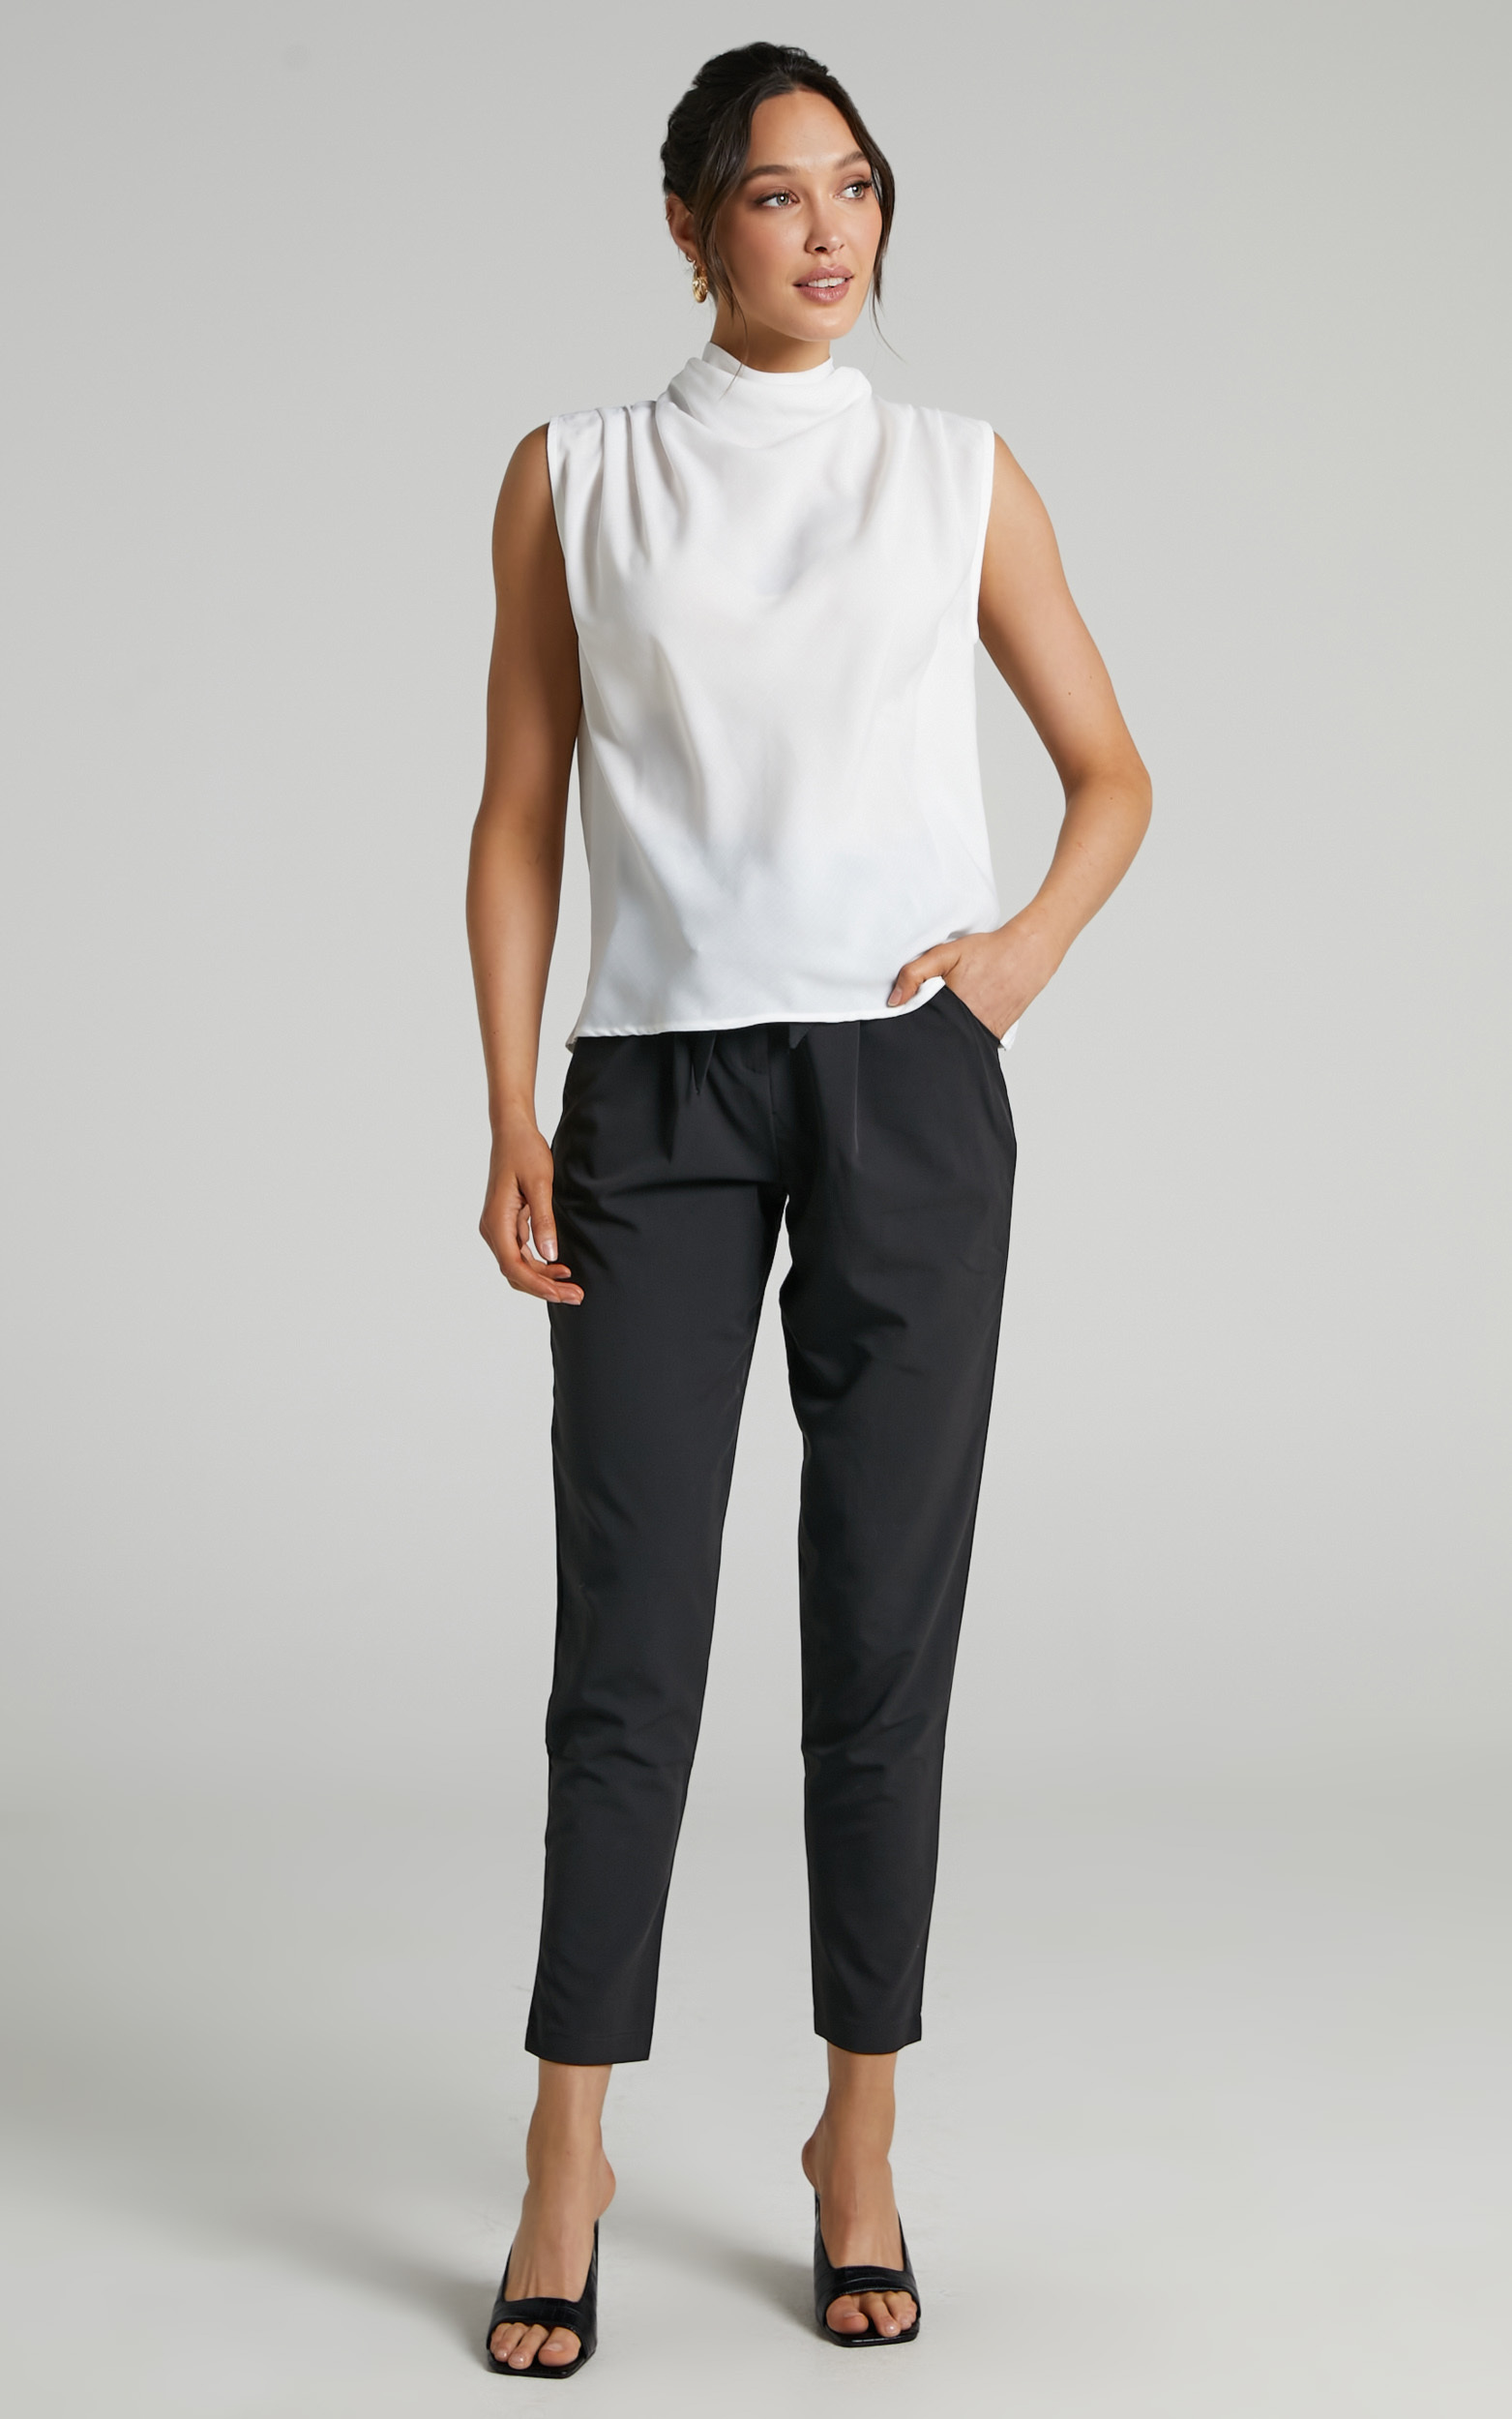 Arianae High Neck Top in White - 06, WHT2, hi-res image number null